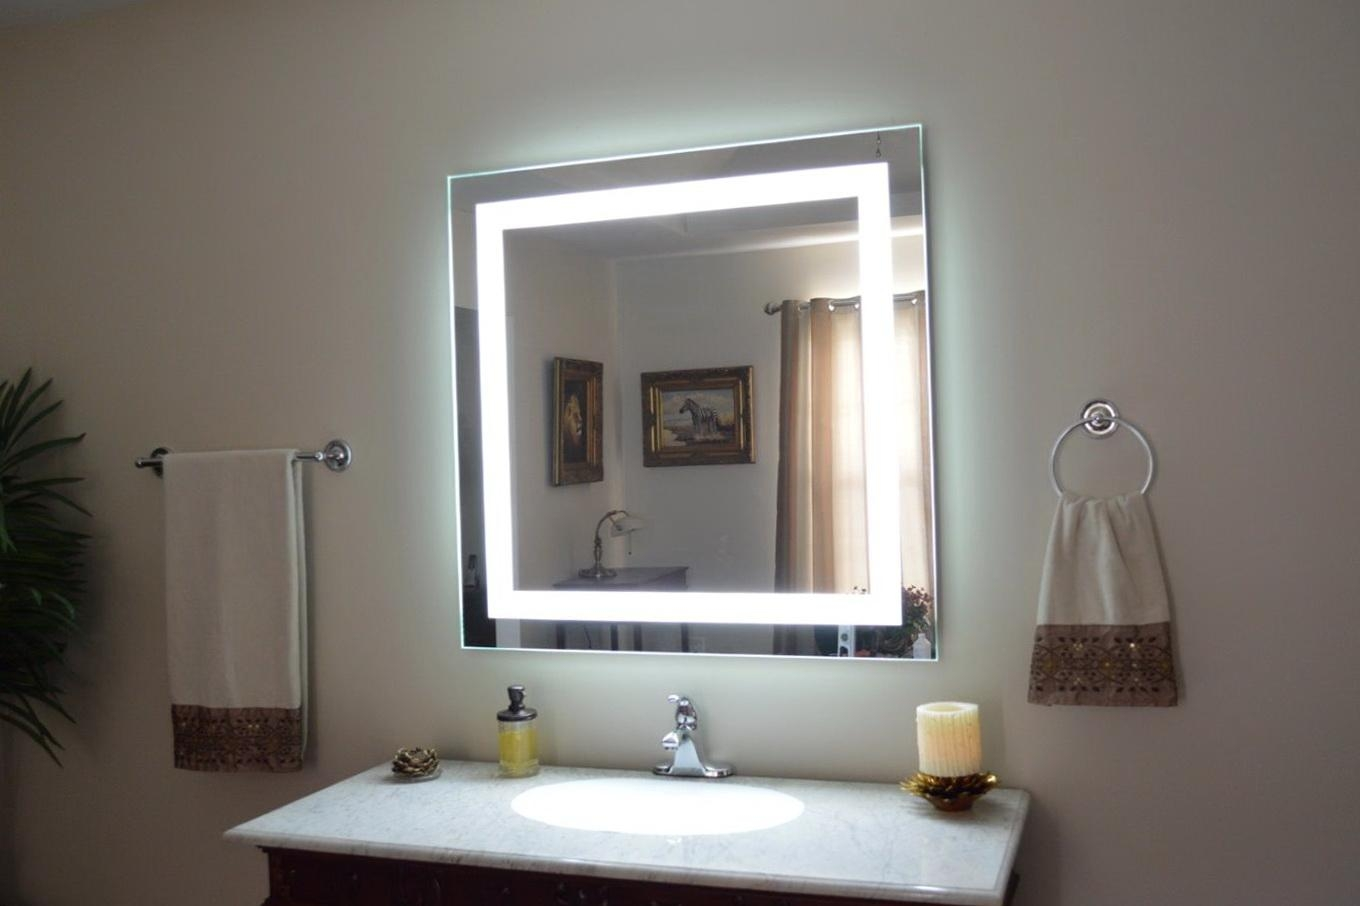 Bathroom Mirror With Lights : Lighted Bathroom Mirror Can Light Up Pertaining To Light Up Bathroom Mirrors (Image 11 of 20)